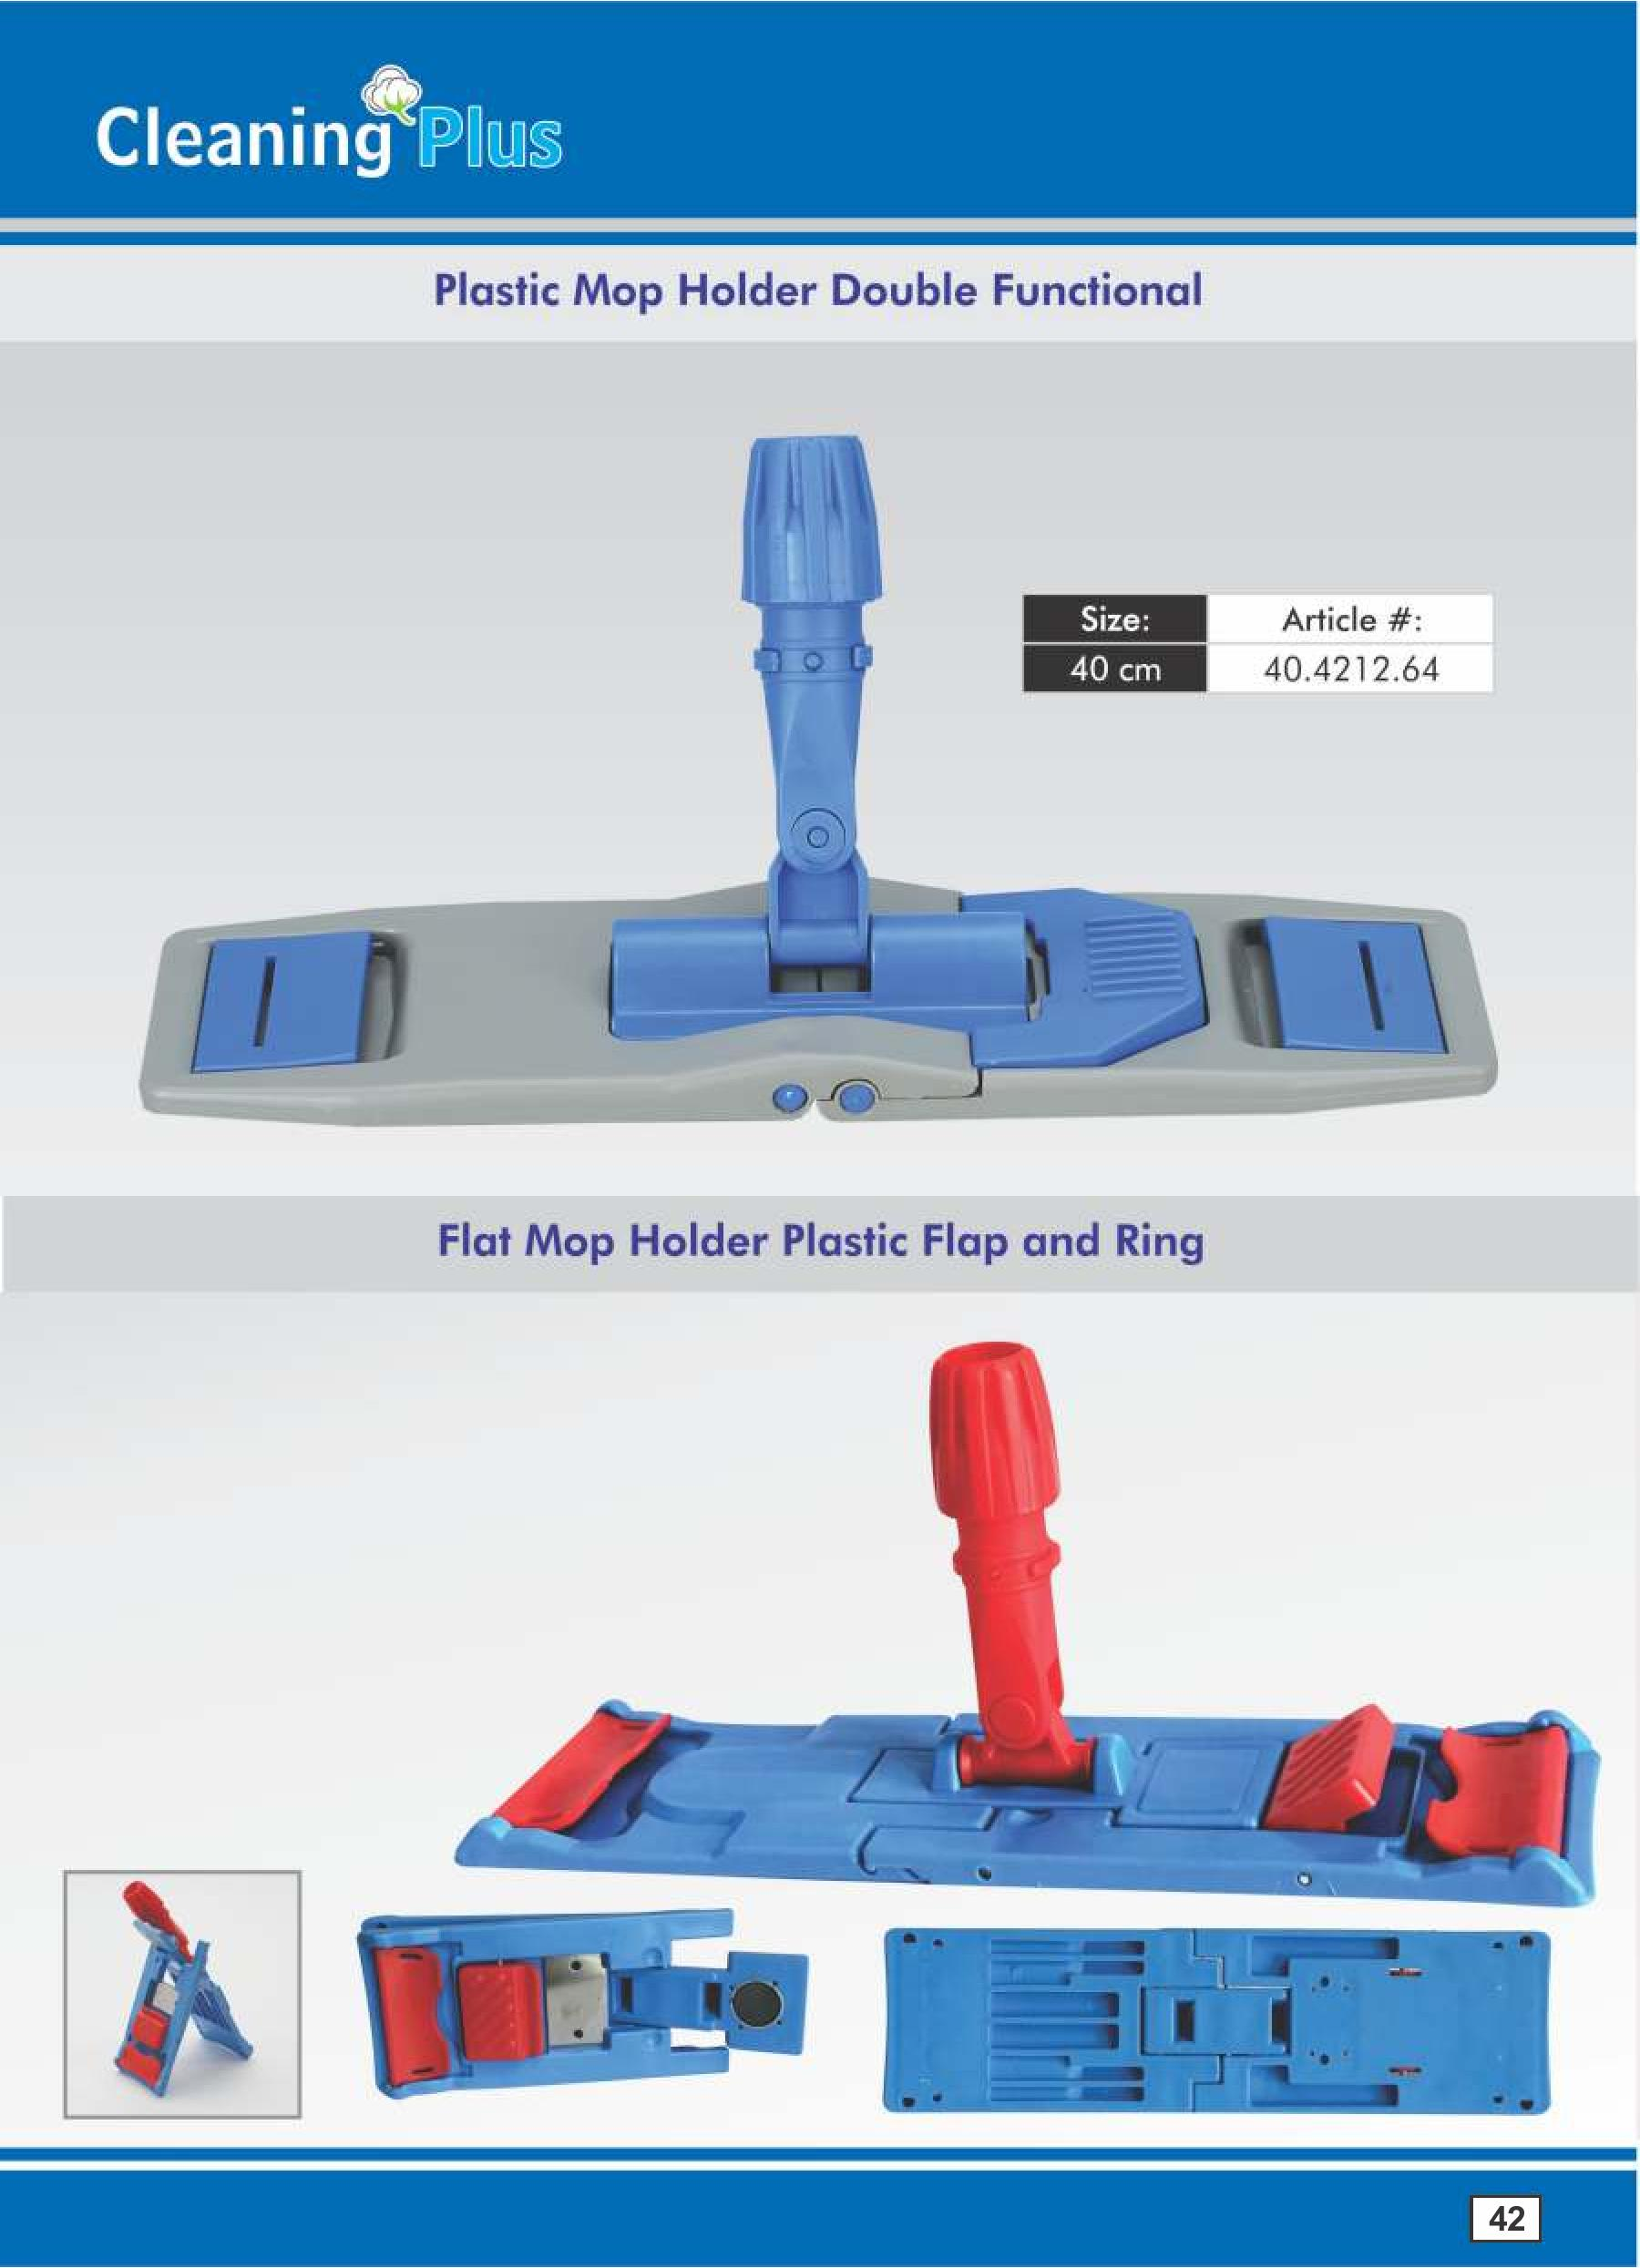 Flat mop Plastic Holder double functional and Magnet frame